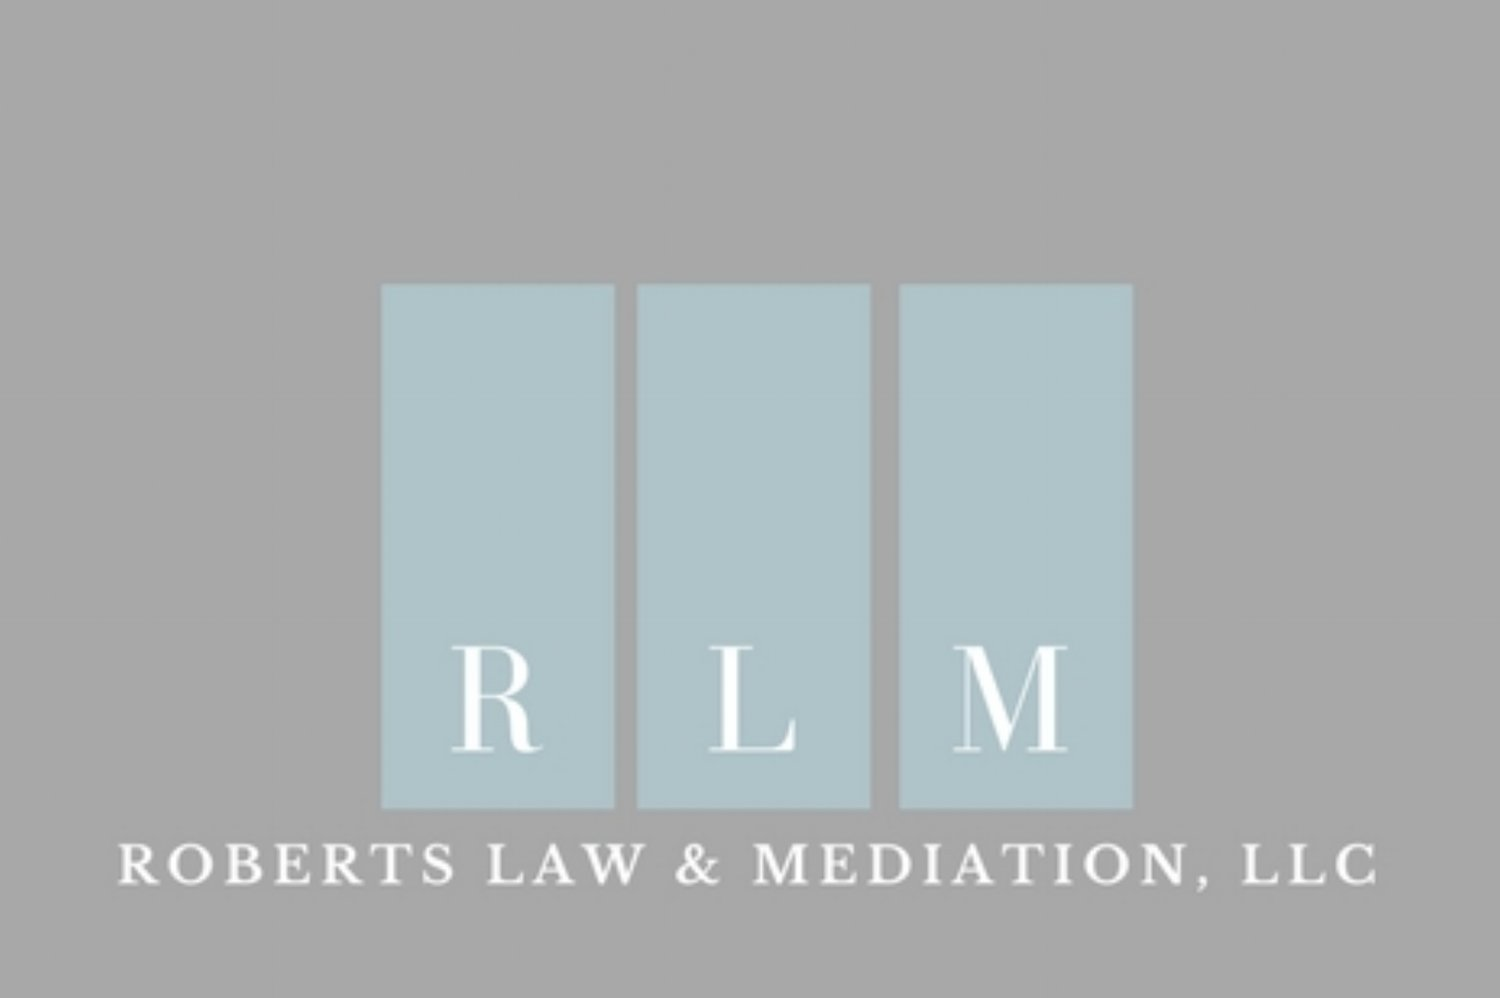 Roberts Law & Mediation, LLC